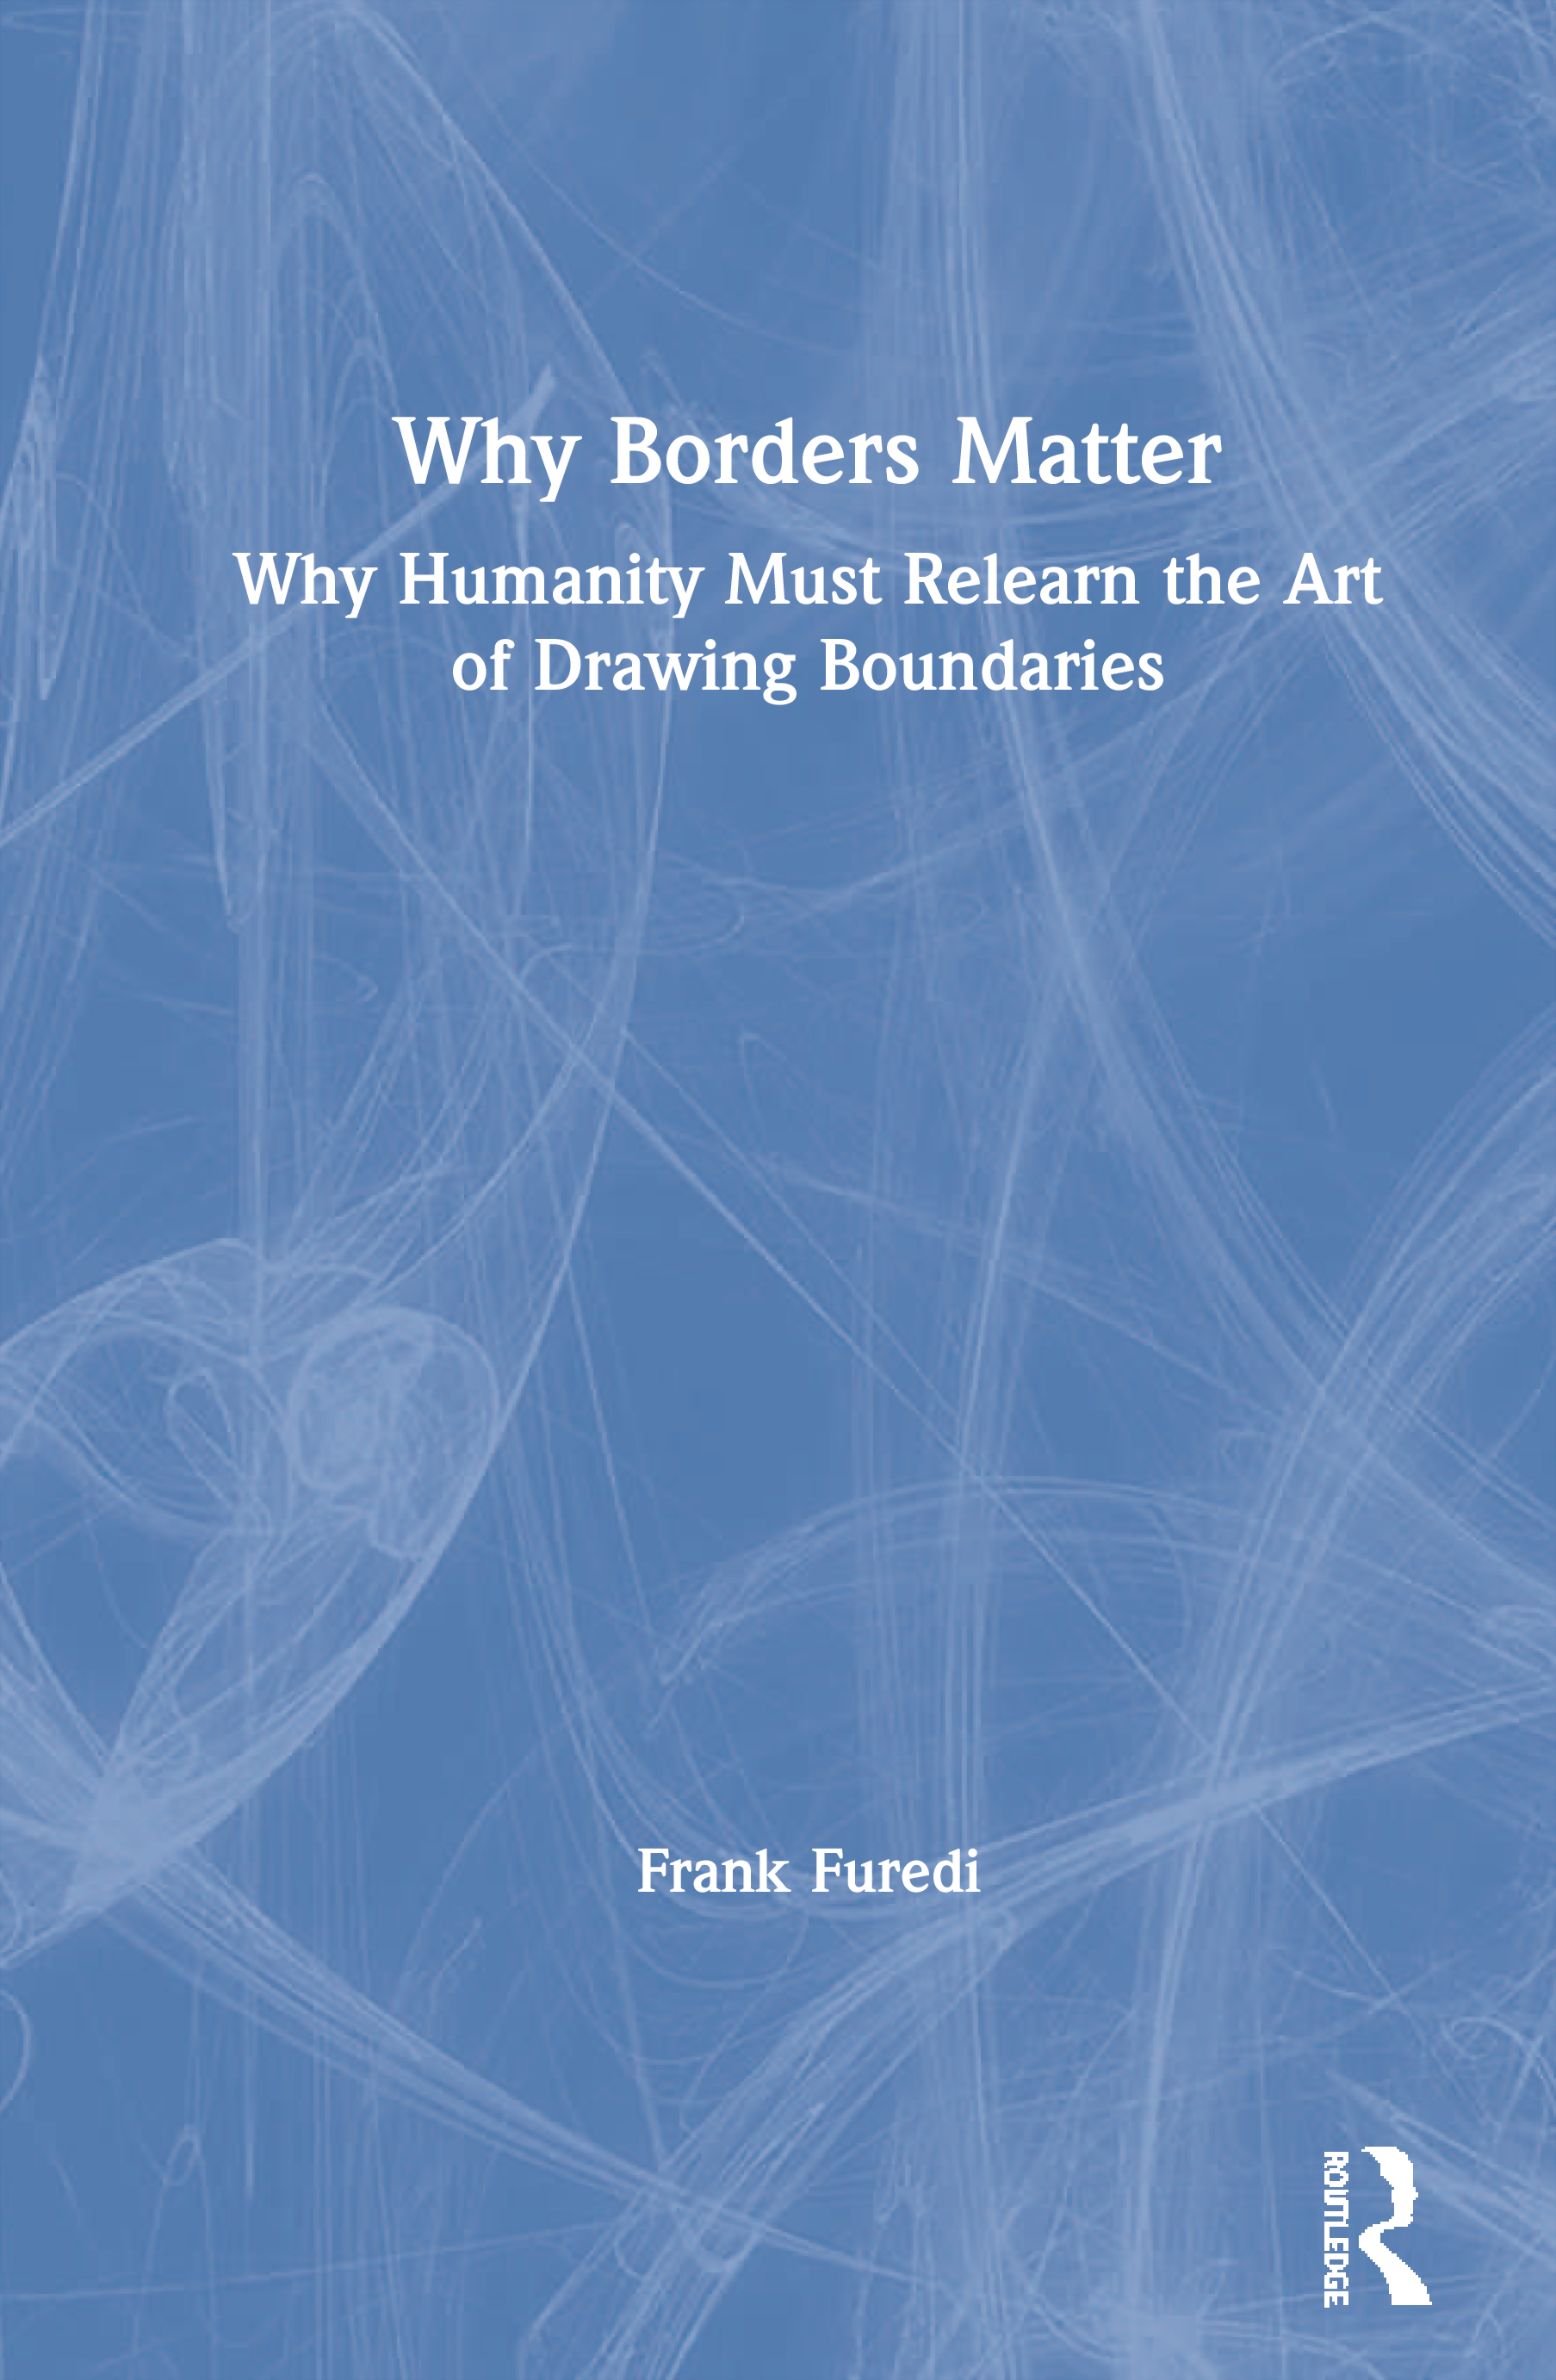 Why Borders Matter: Why Humanity Must Relearn the Art of Drawing Boundaries book cover